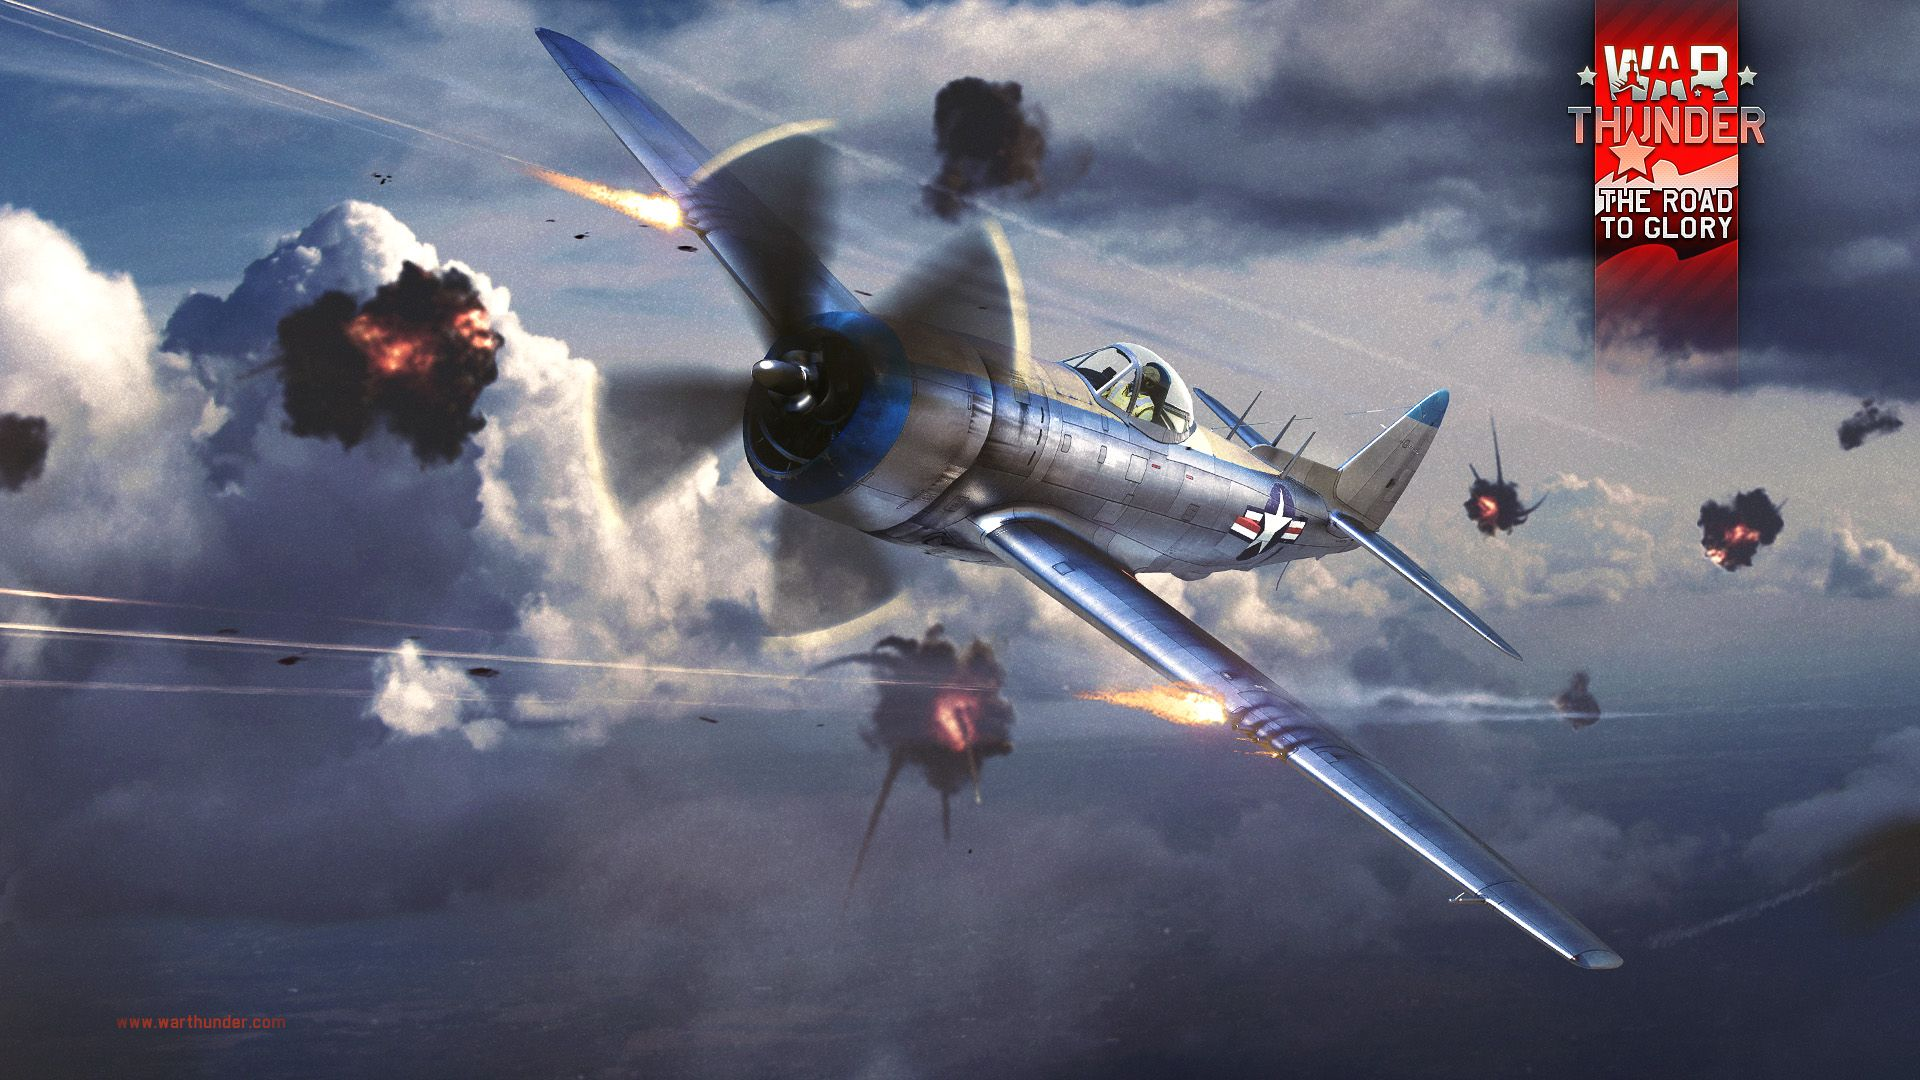 WarThunder_The_Road_to_Glory_air